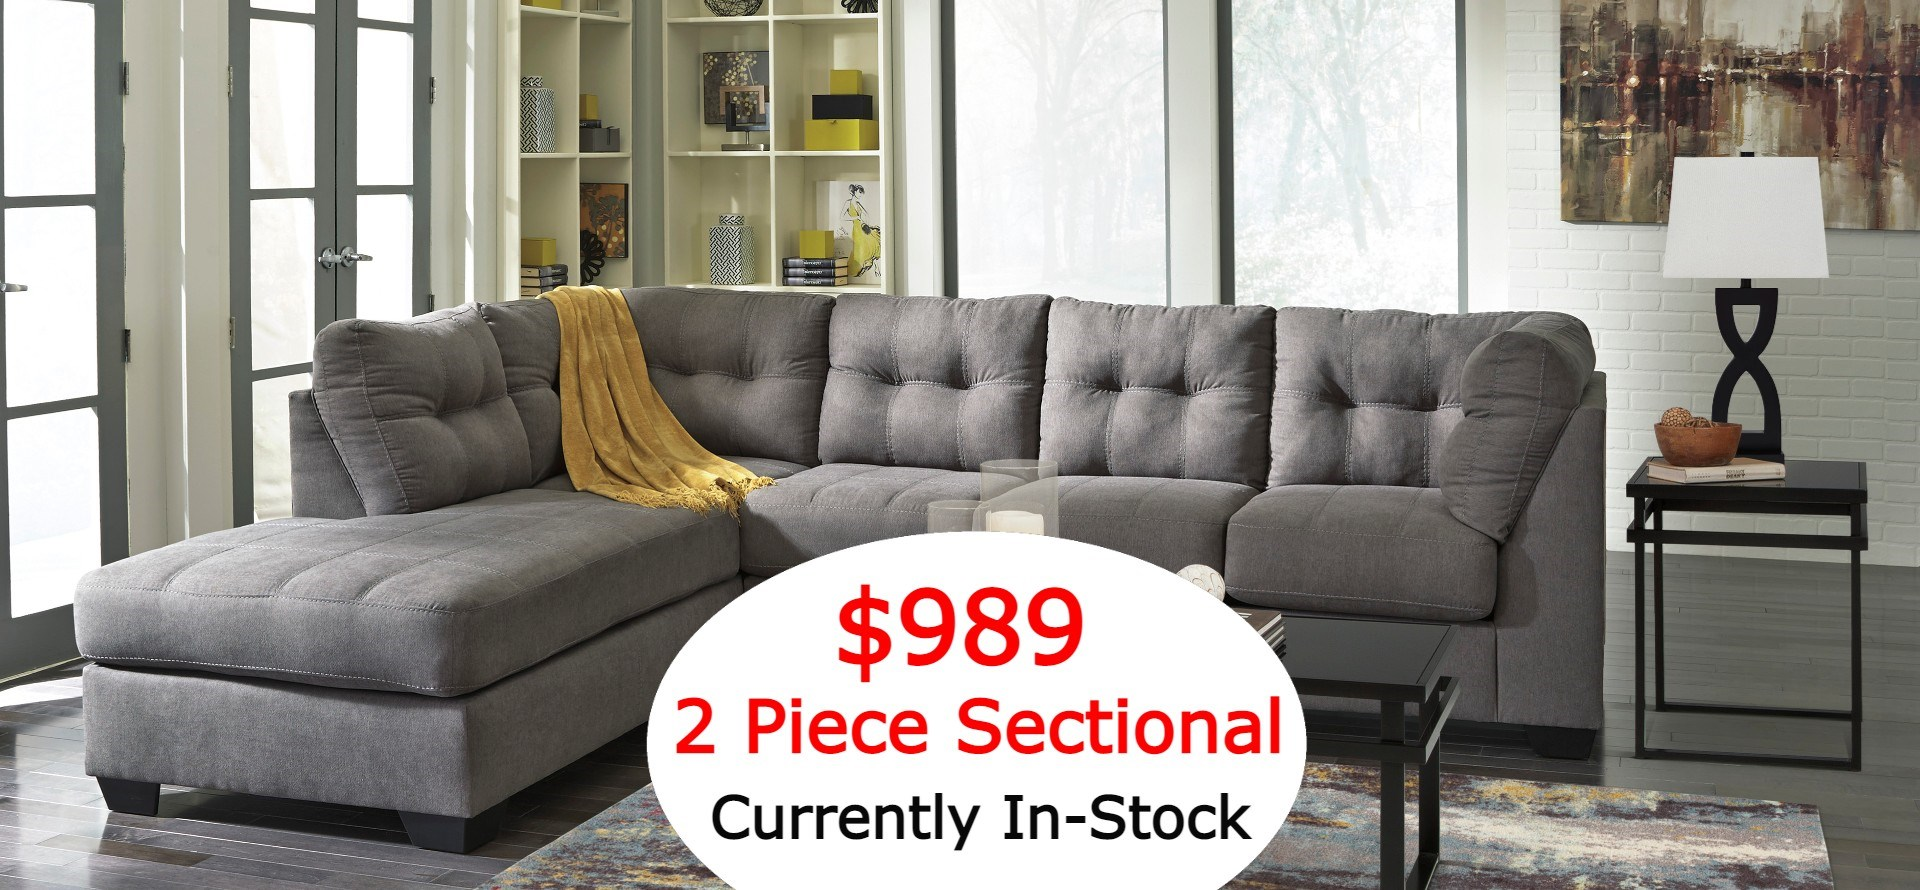 in-stock sectional